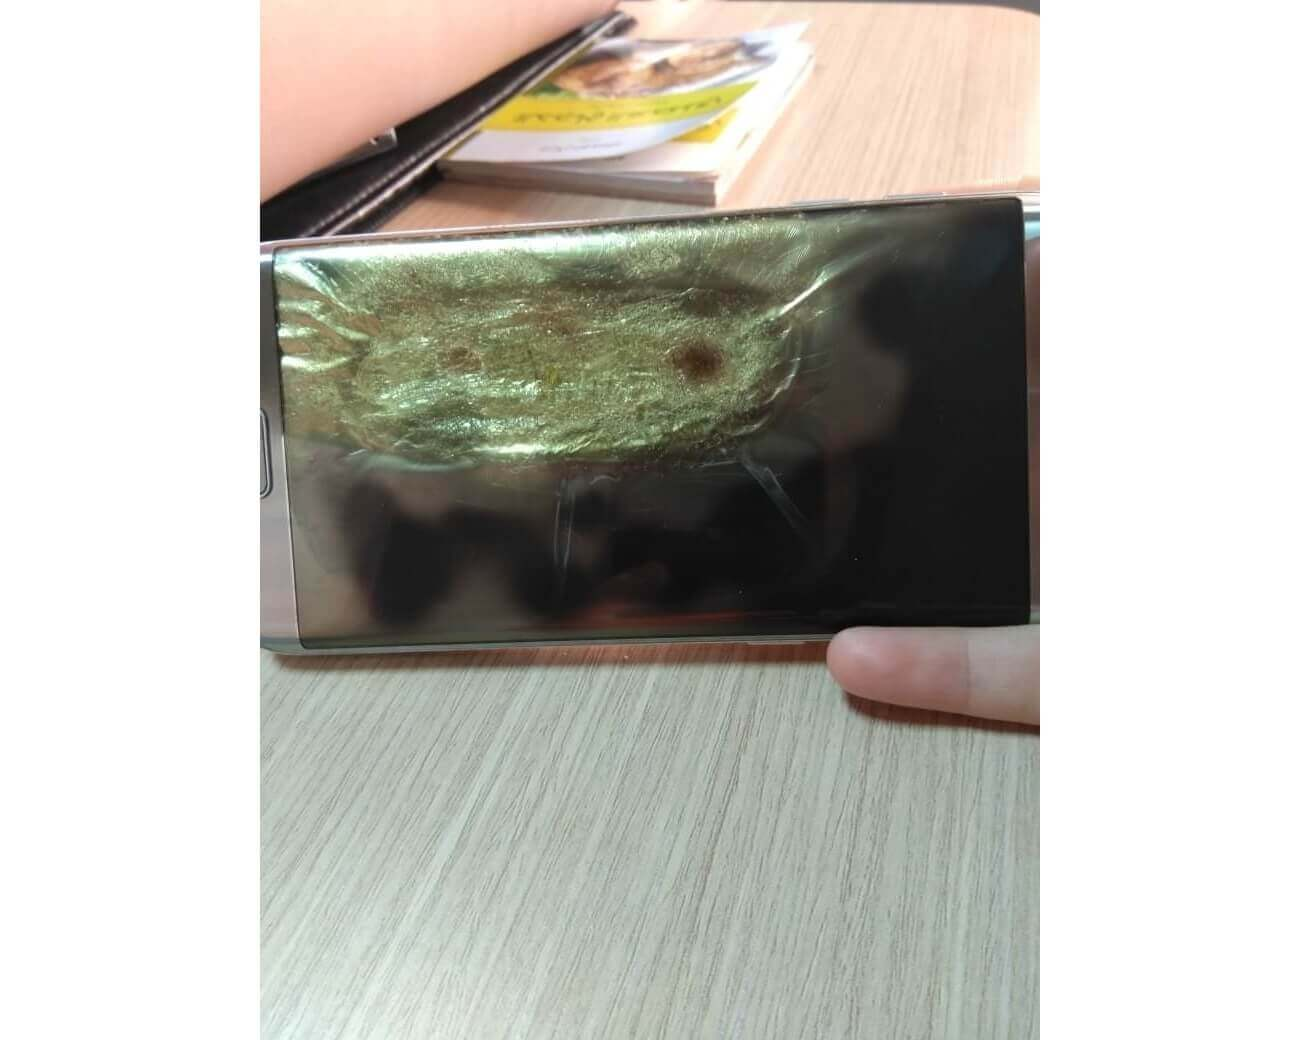 Samsung Galaxy S7 Edge сгорел